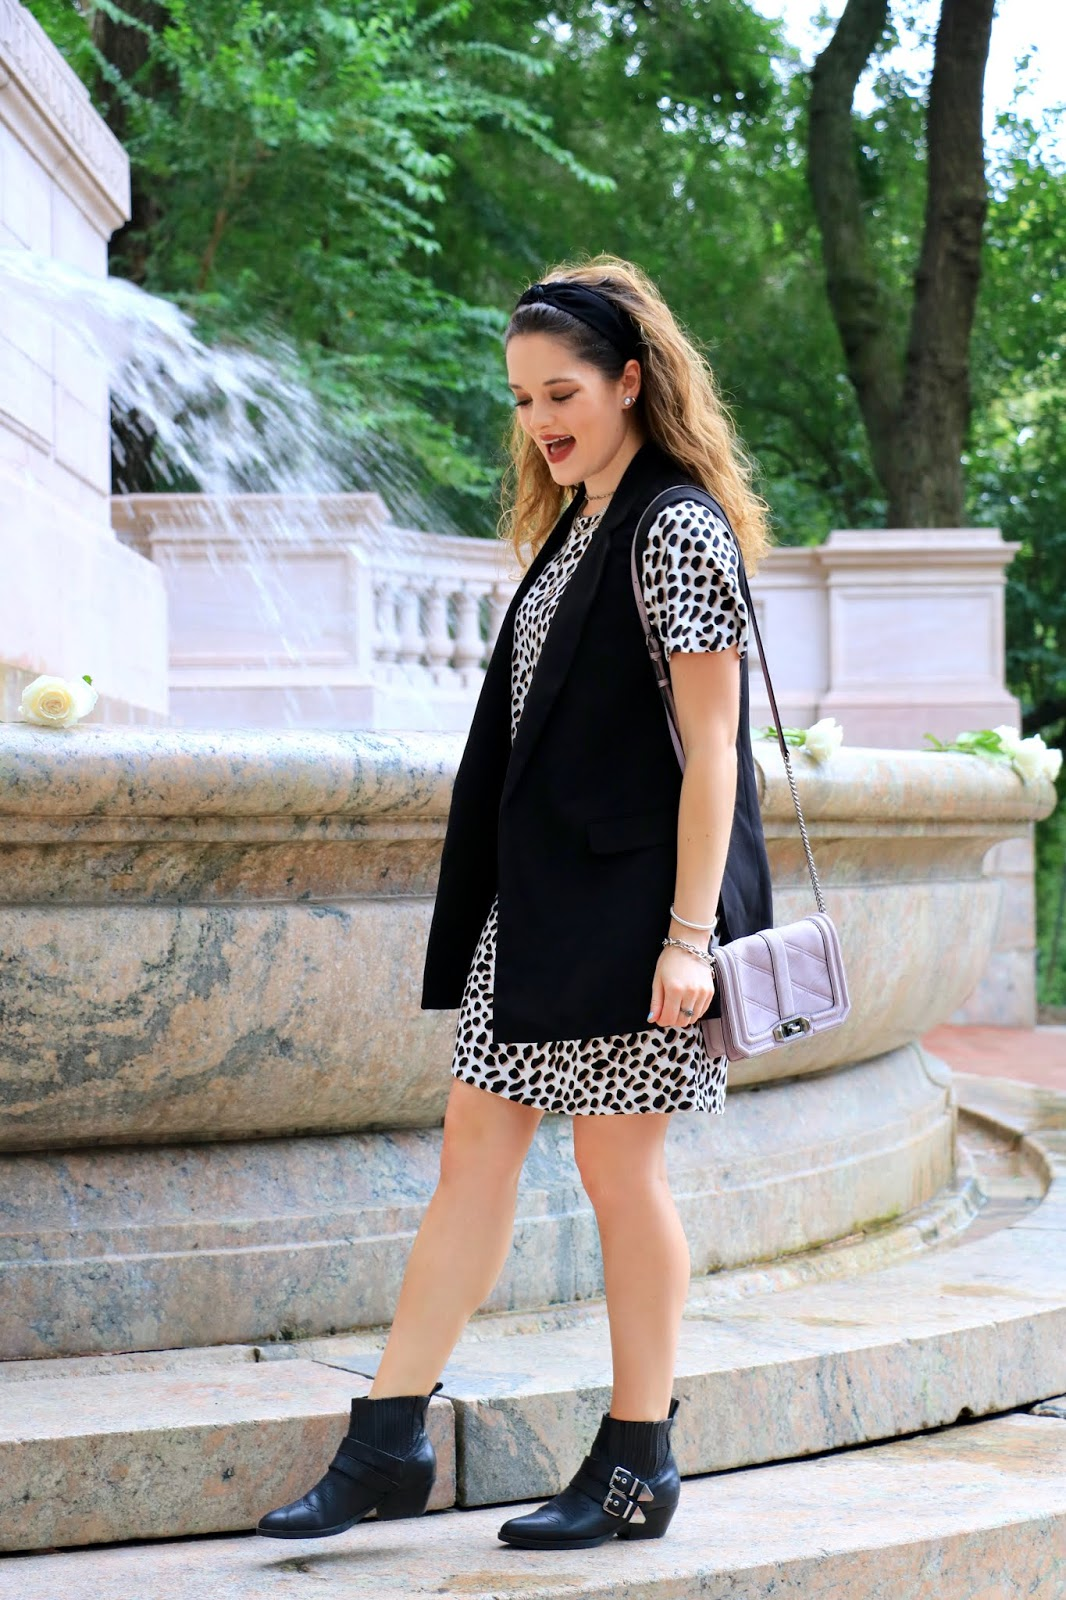 Nyc fashion blogger Kathleen Harper's 2018 fall fashion